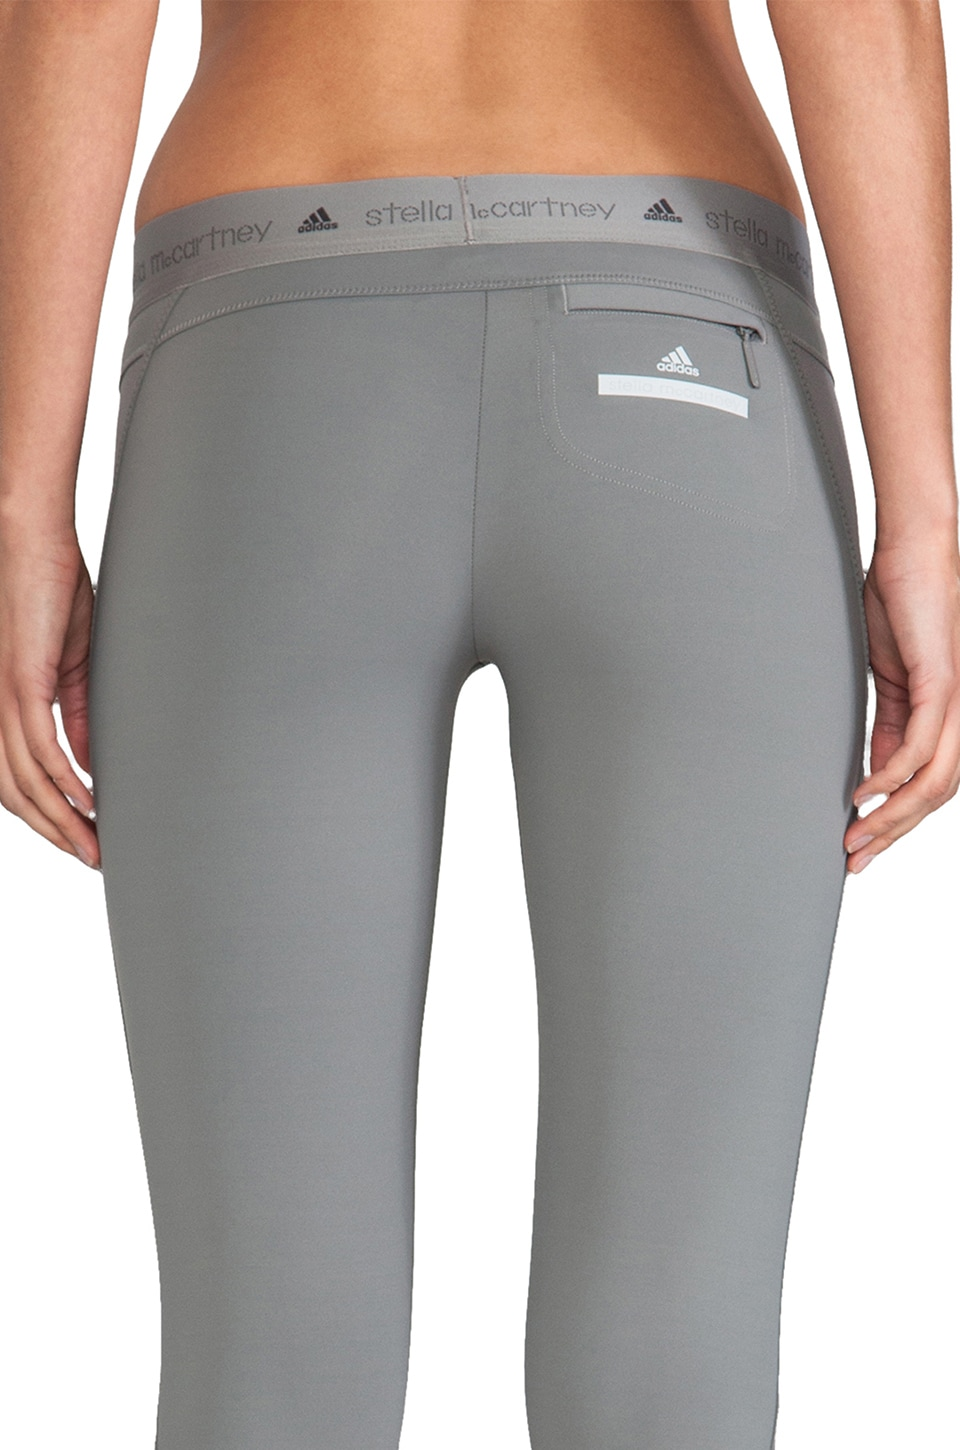 Stella Mccartney Adidas Leggings Adidas by Stella Mccartney Run